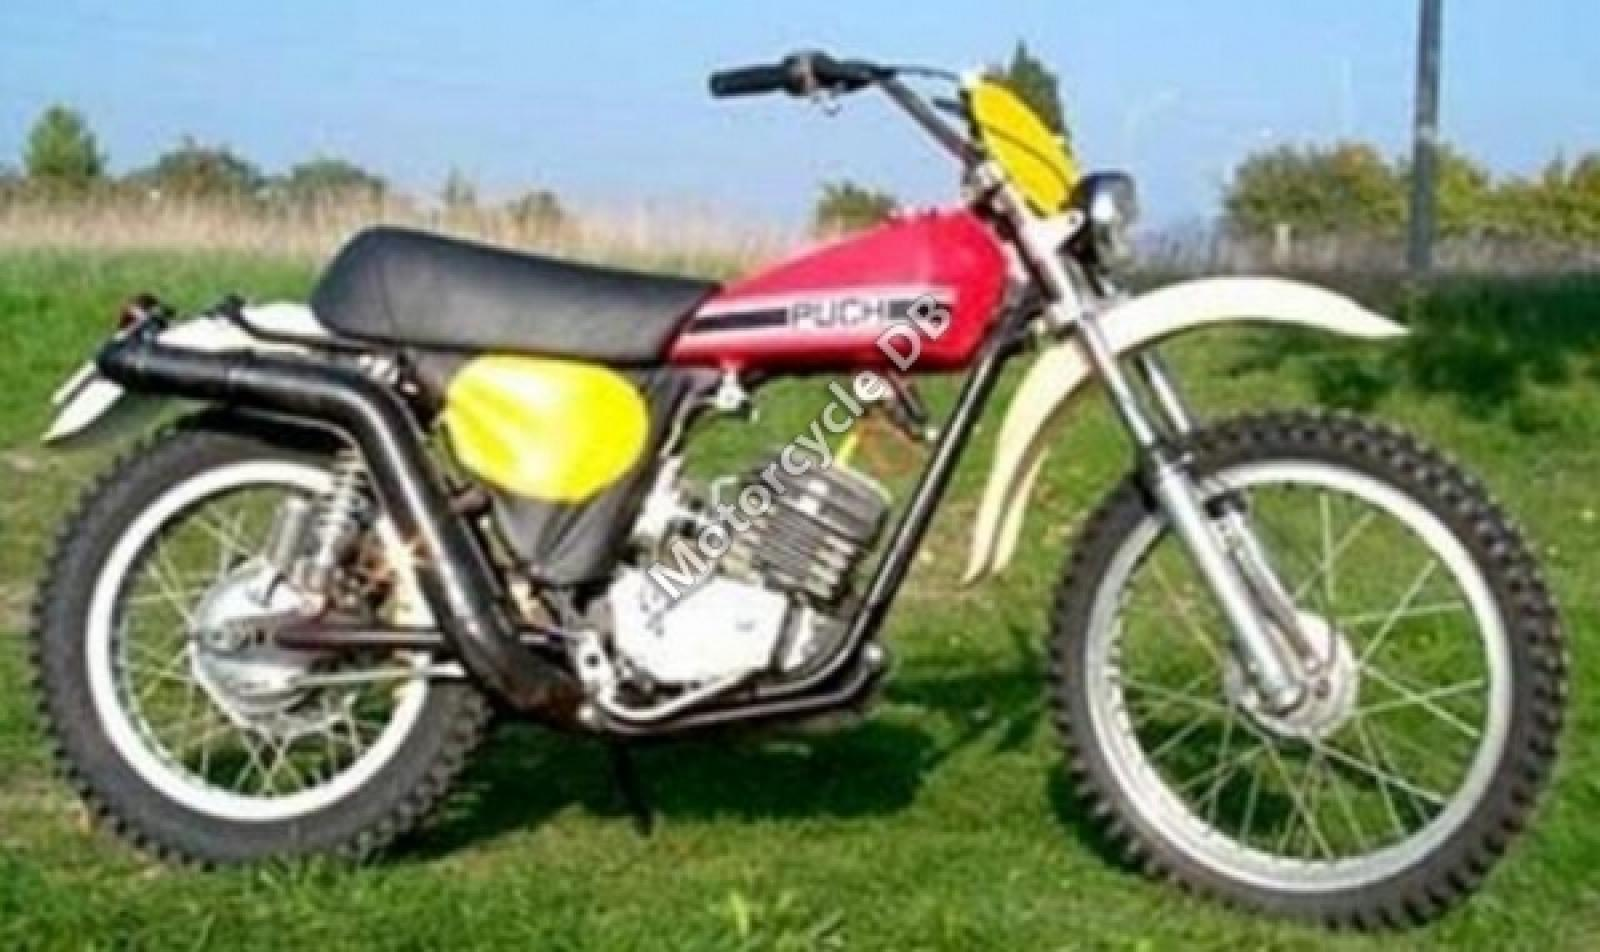 Puch GS 560 F 4 T 1987 images #158604